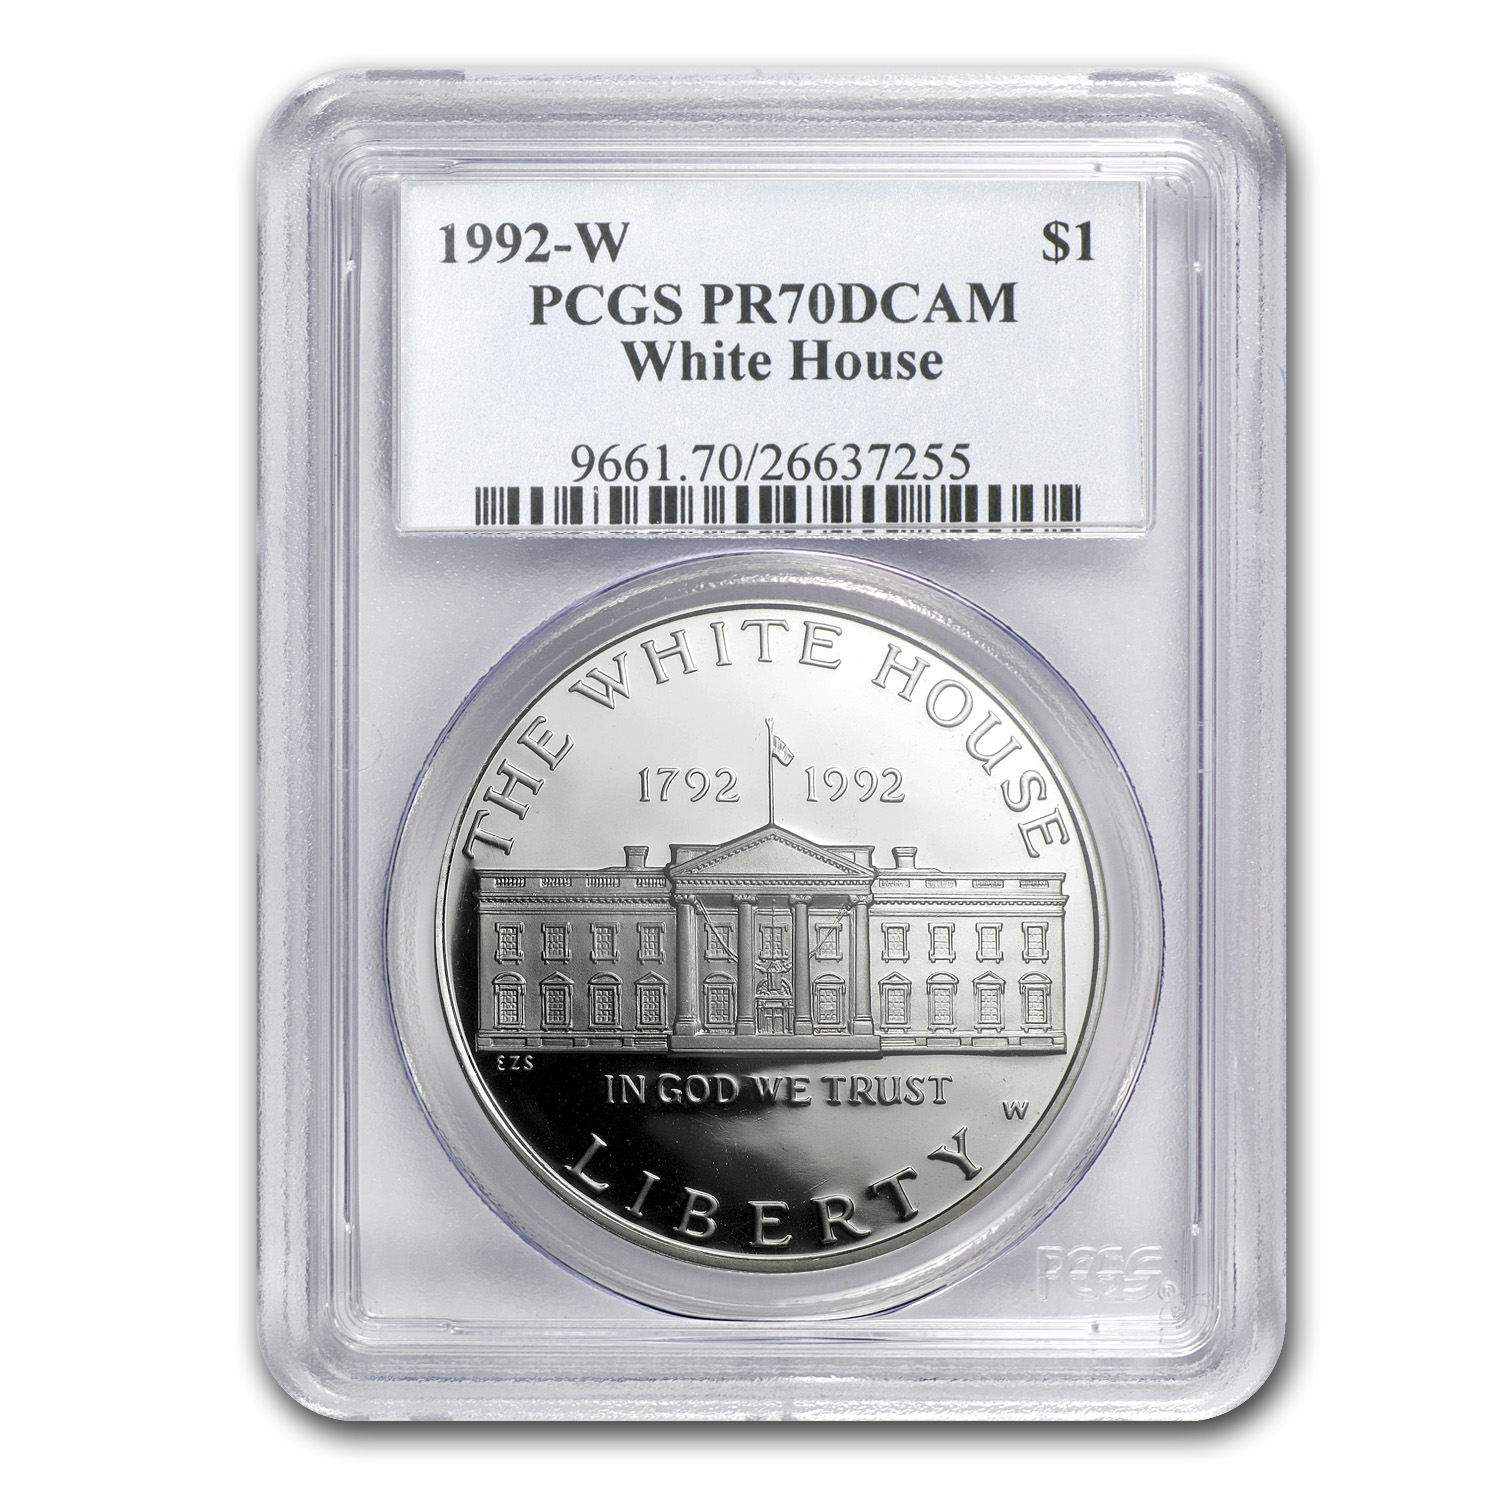 1992-W White House $1 Silver Commemorative PR-70 PCGS